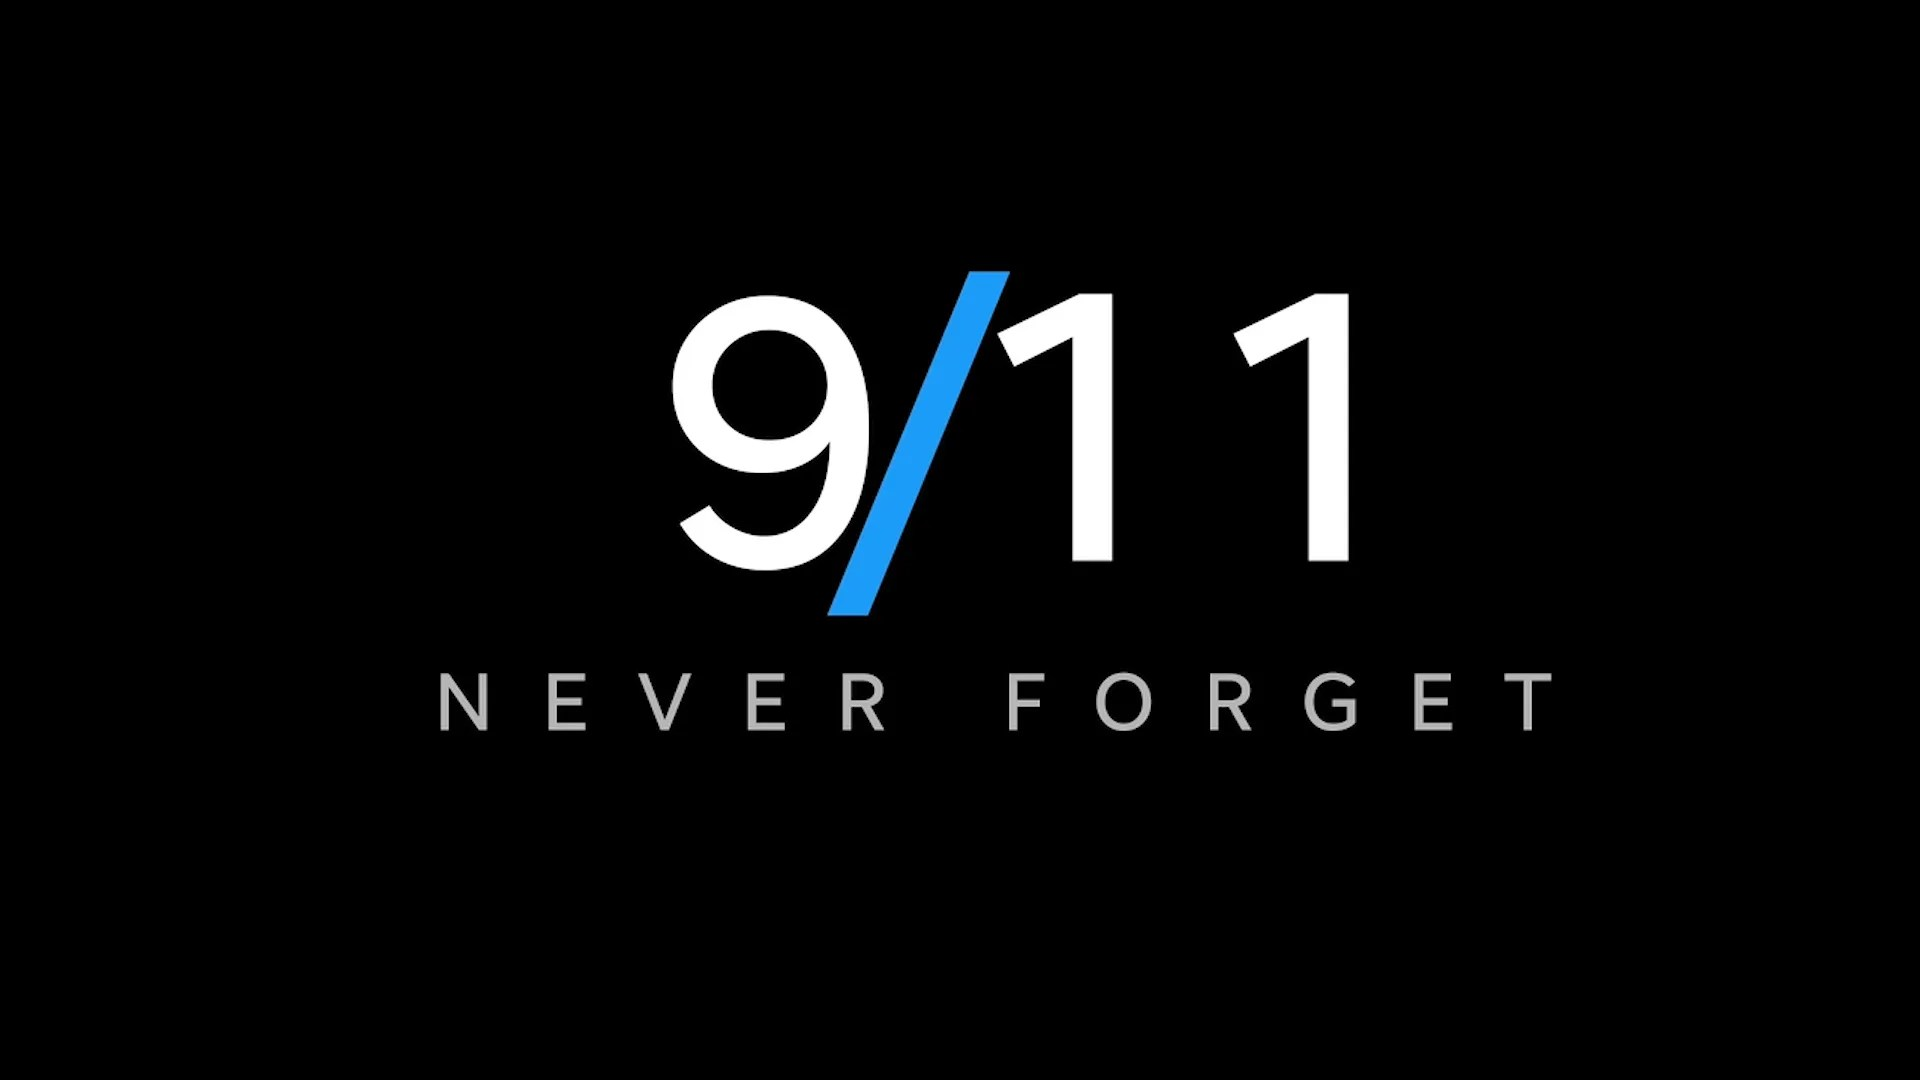 439ad2ba cedd 41a6 ae78 9868dd3c150a VPC EVERGREEN 911 DESK THUMB 'America will always rise up': Trump and Biden pay respects to 9/11 victims in memorial visits